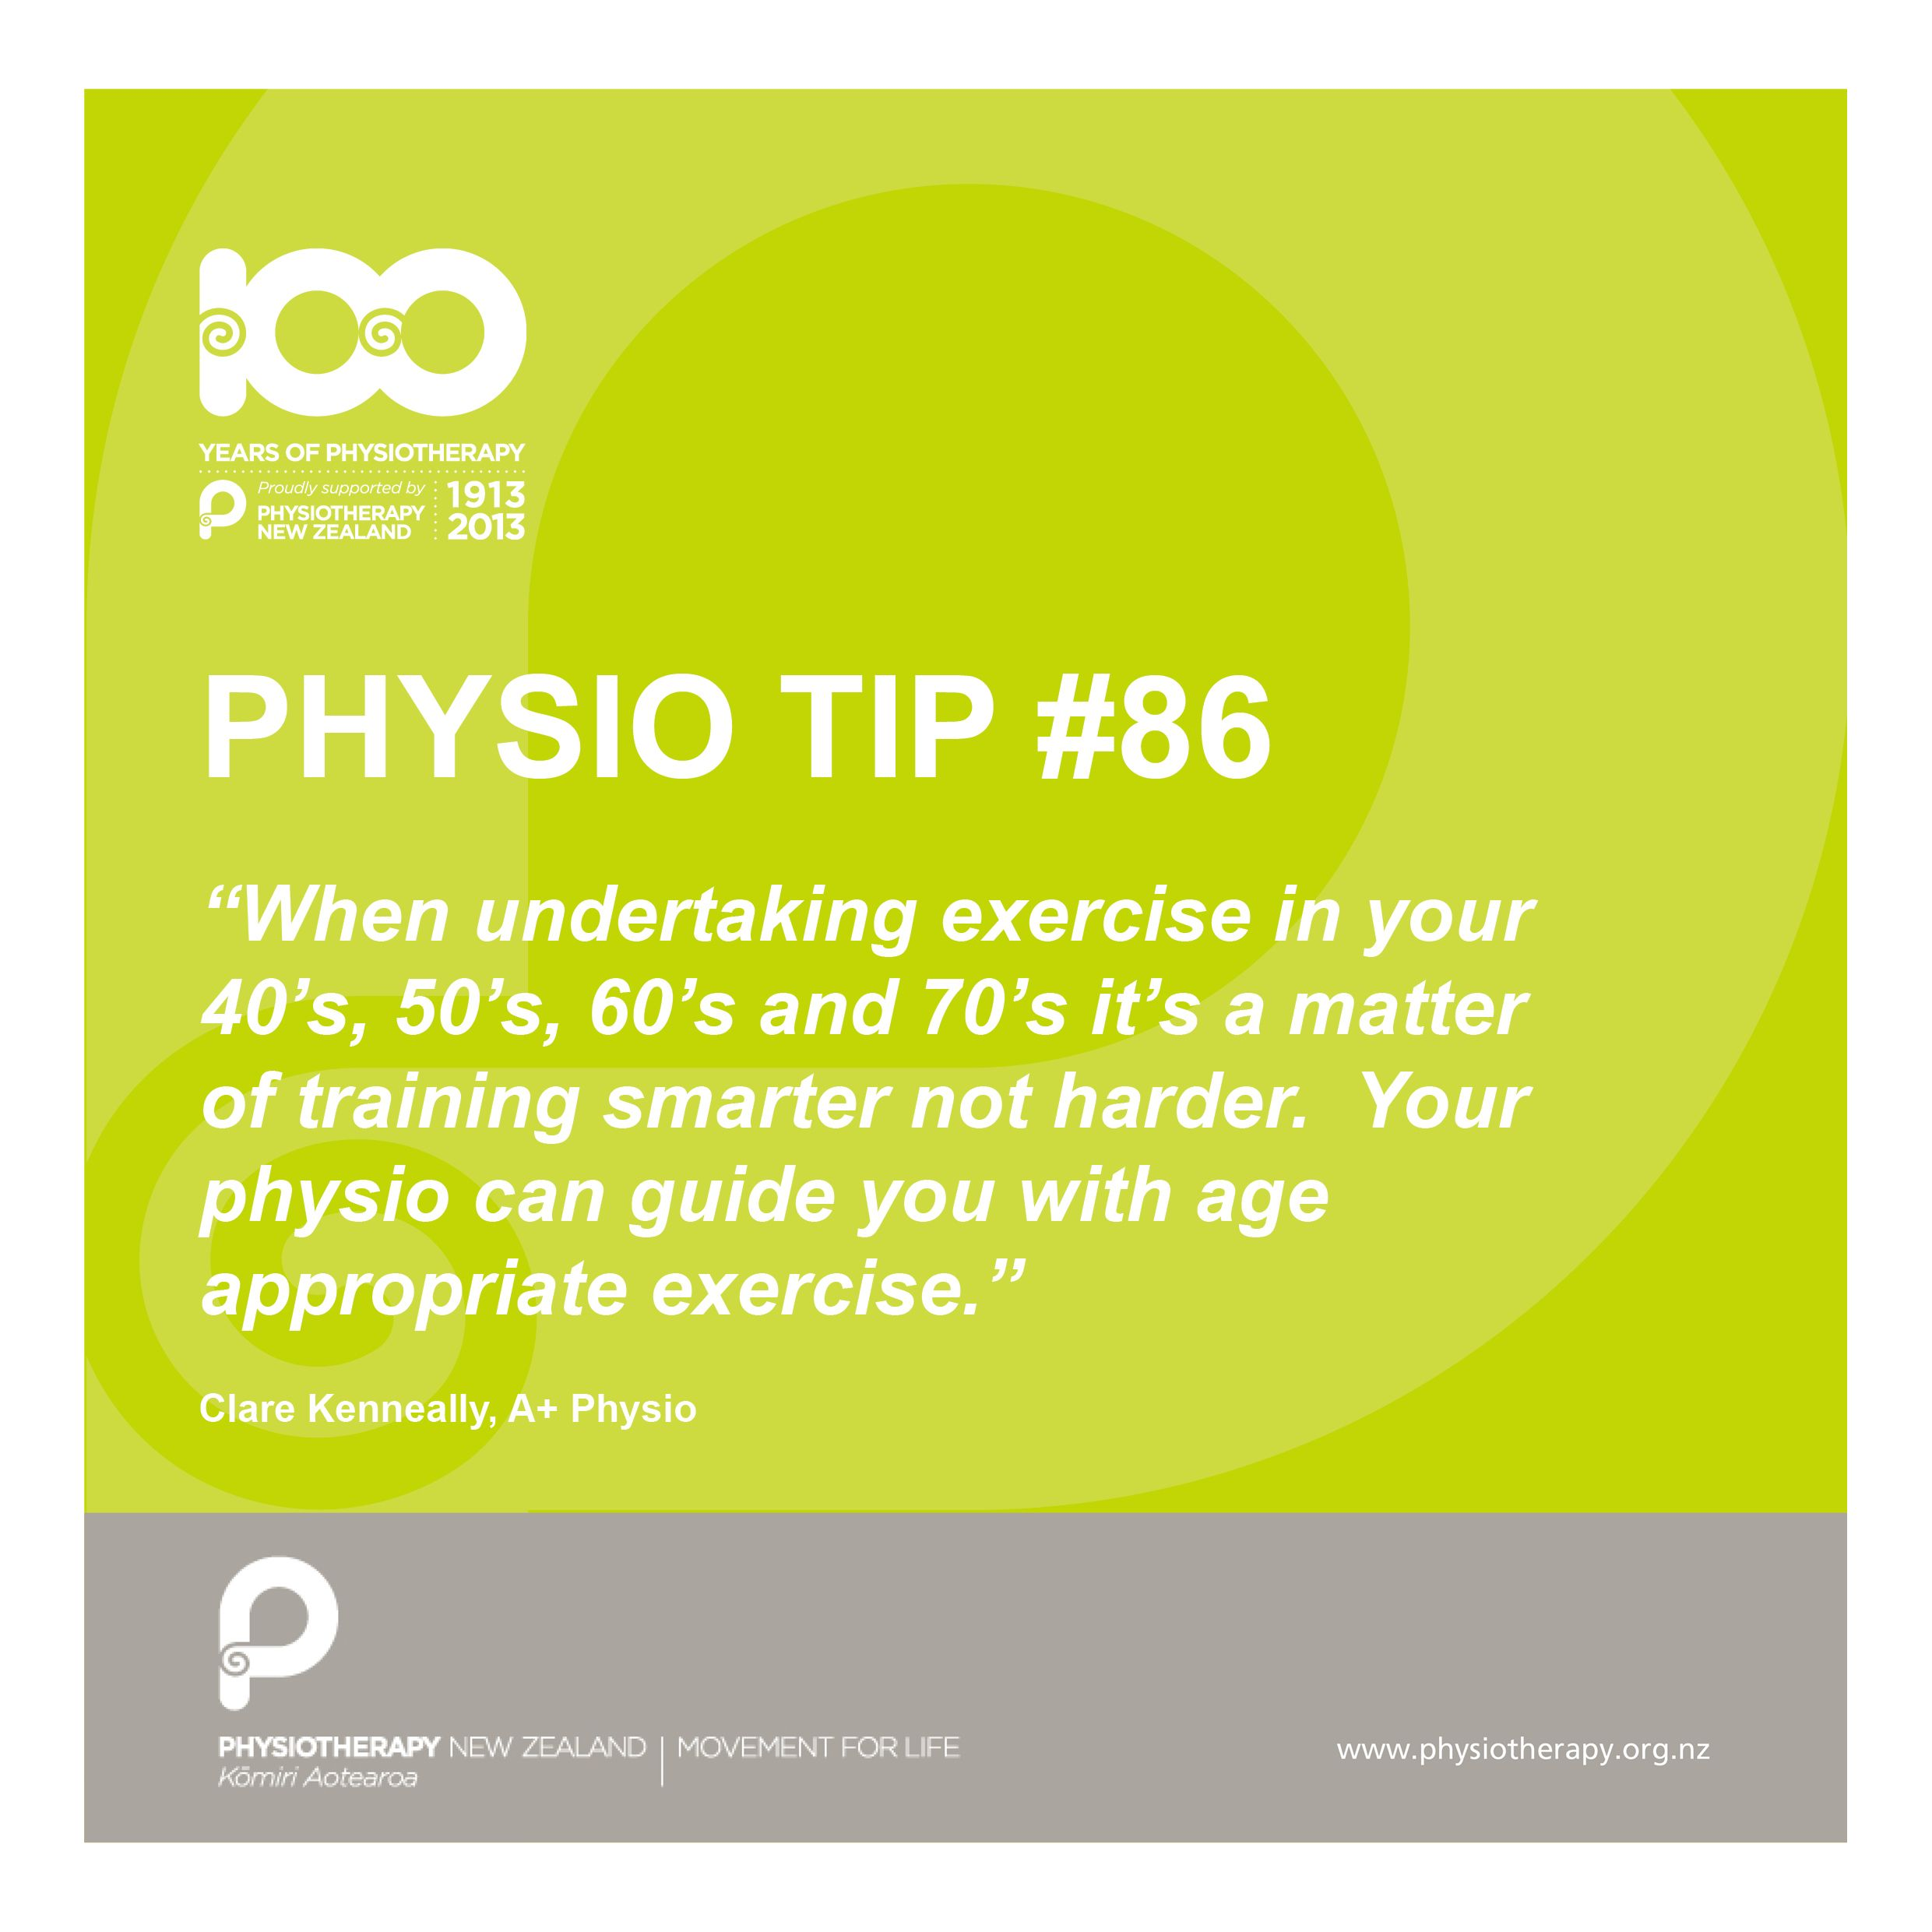 physio tip train smarter, not harder. Fisioterapia y